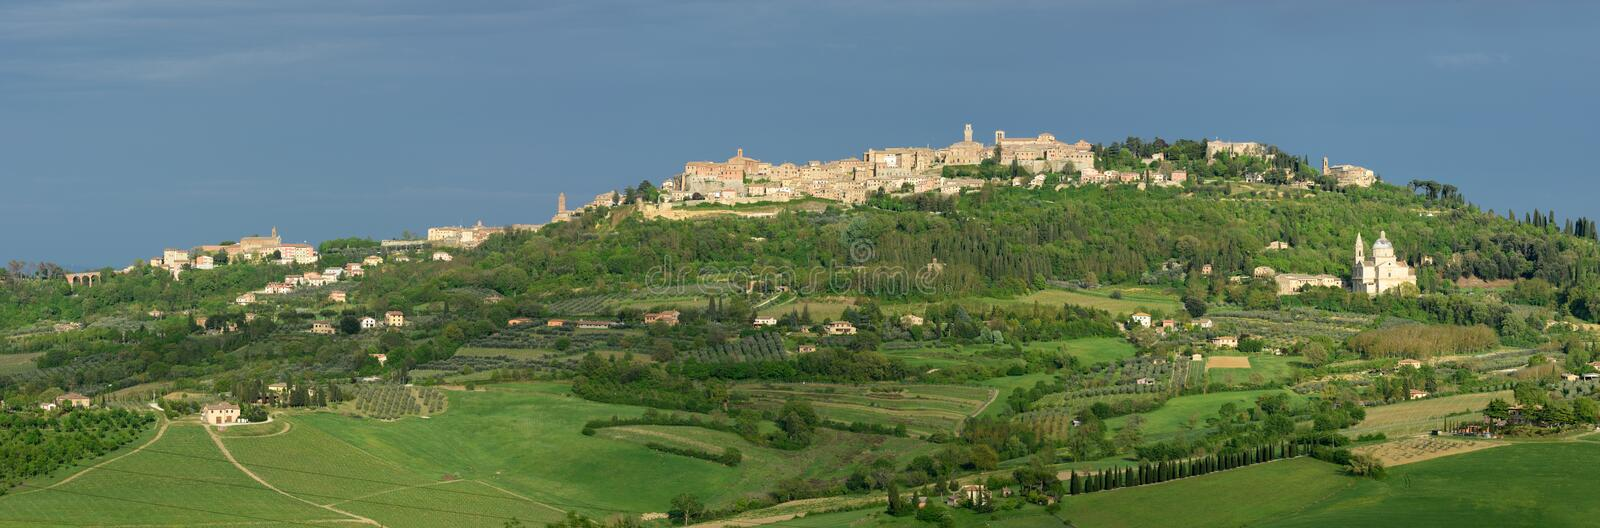 Montepulciano. The historical hill town Montepulciano in southern Tuscany - Italy royalty free stock photos